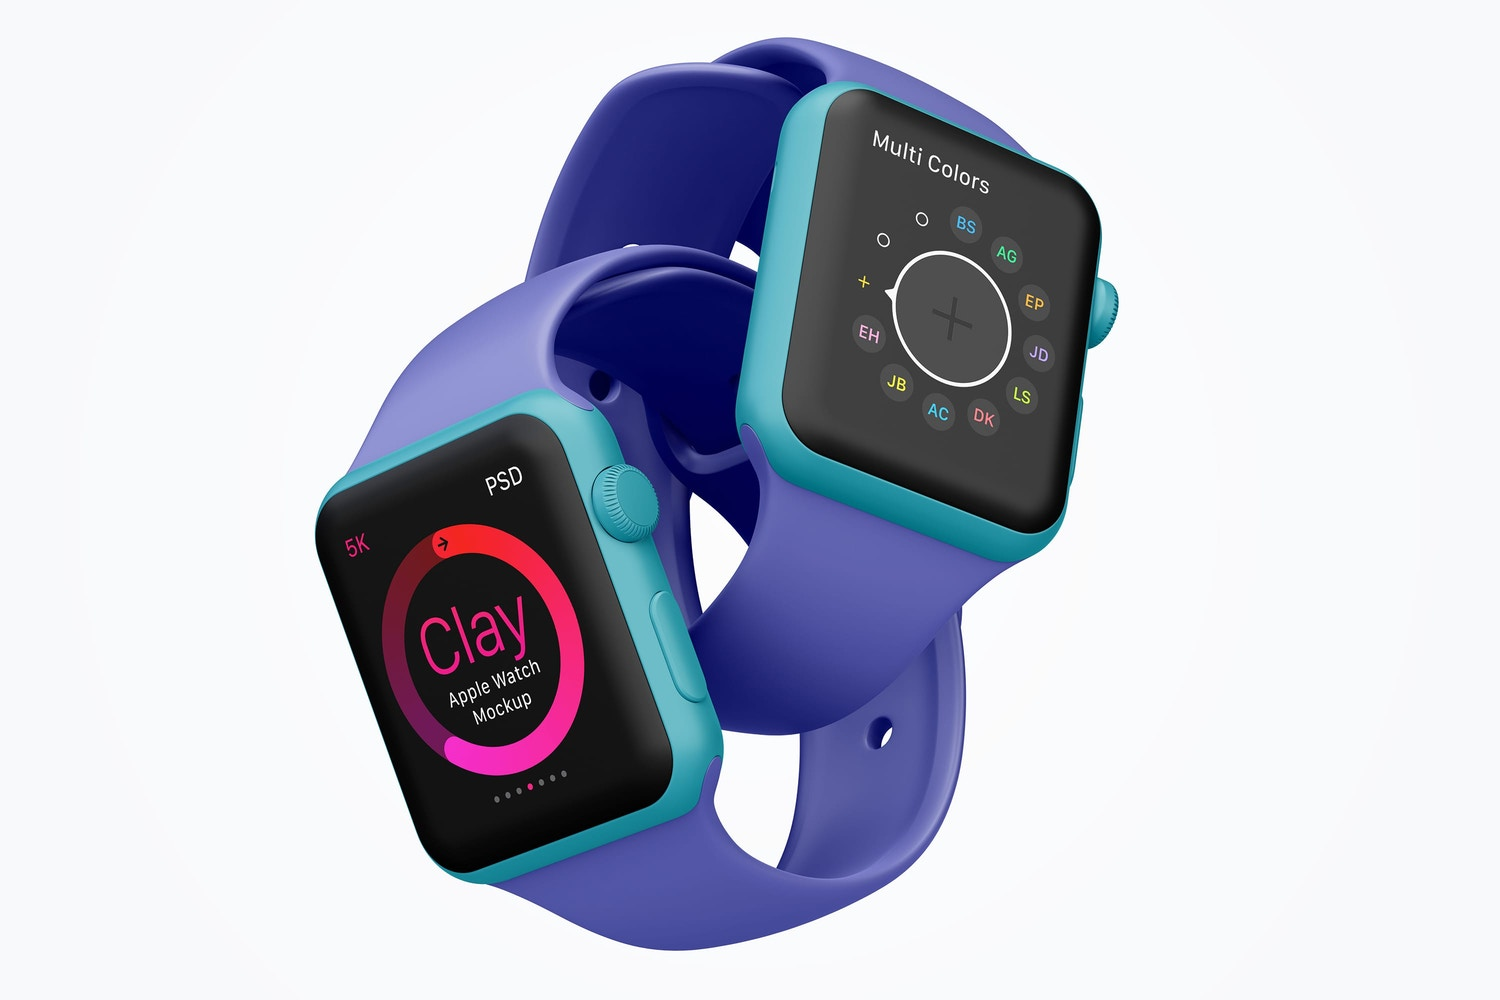 Apply the color you want to any part of the devices including the handles, body, and glass.